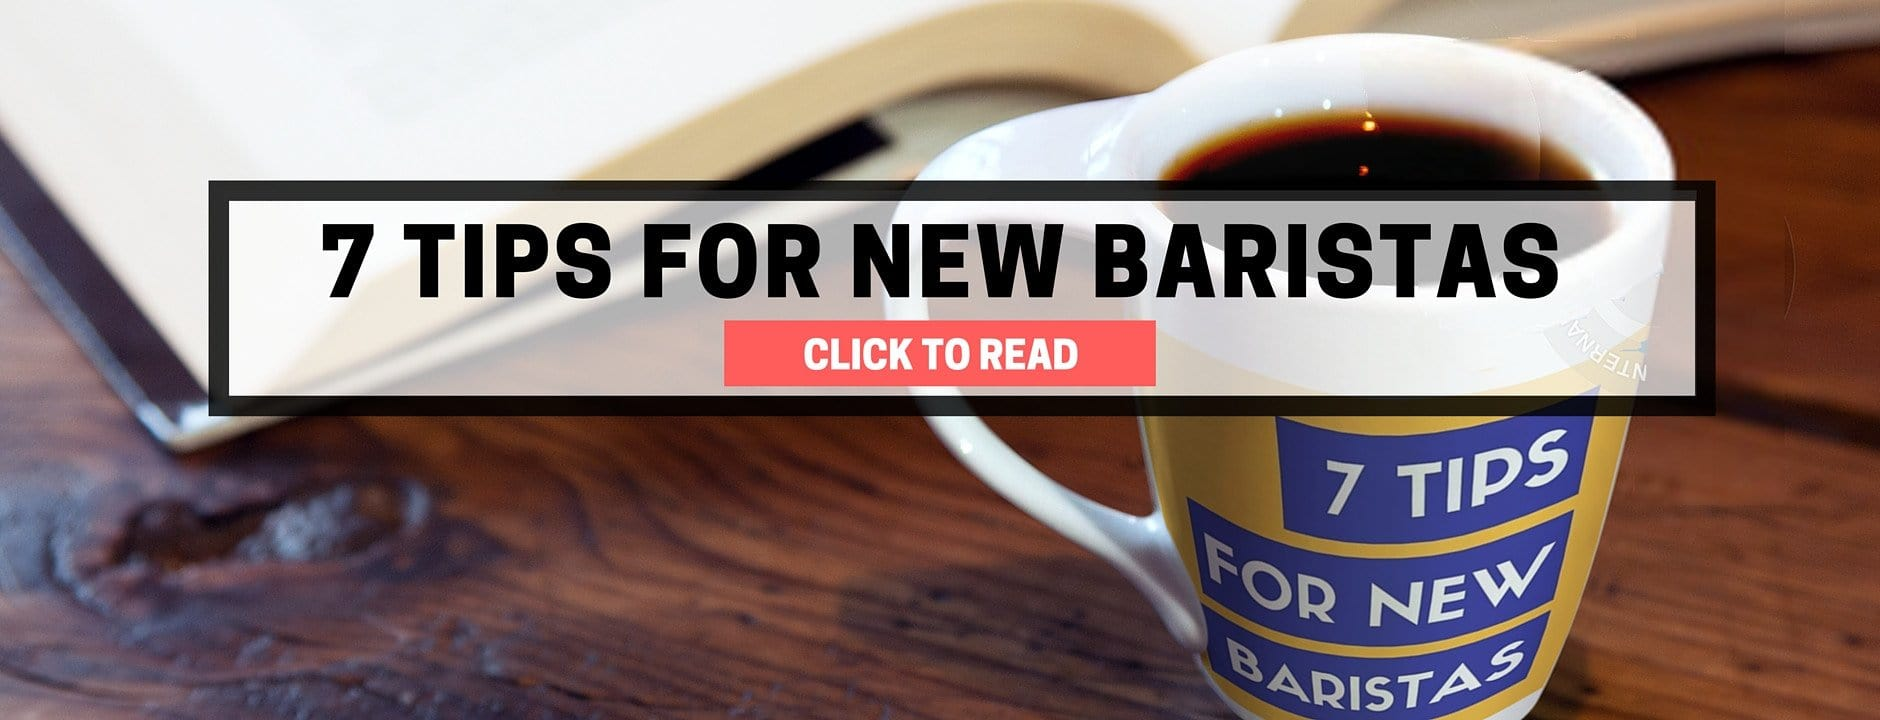 7 Tips for New Baristas